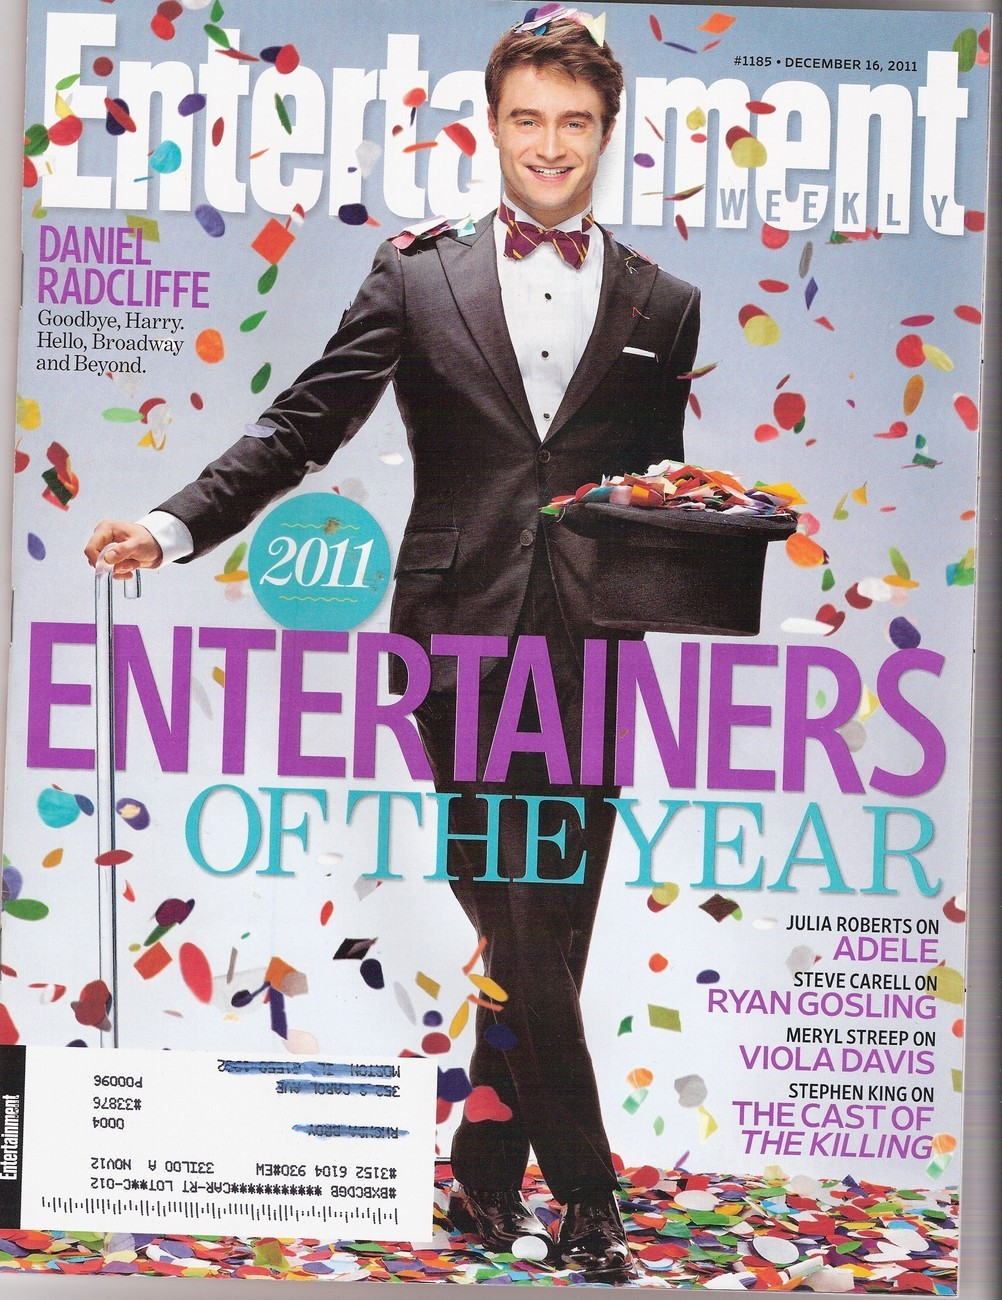 2011 Entertainers of the Year - Entertainment Weekly (Dec. 16, 2011)